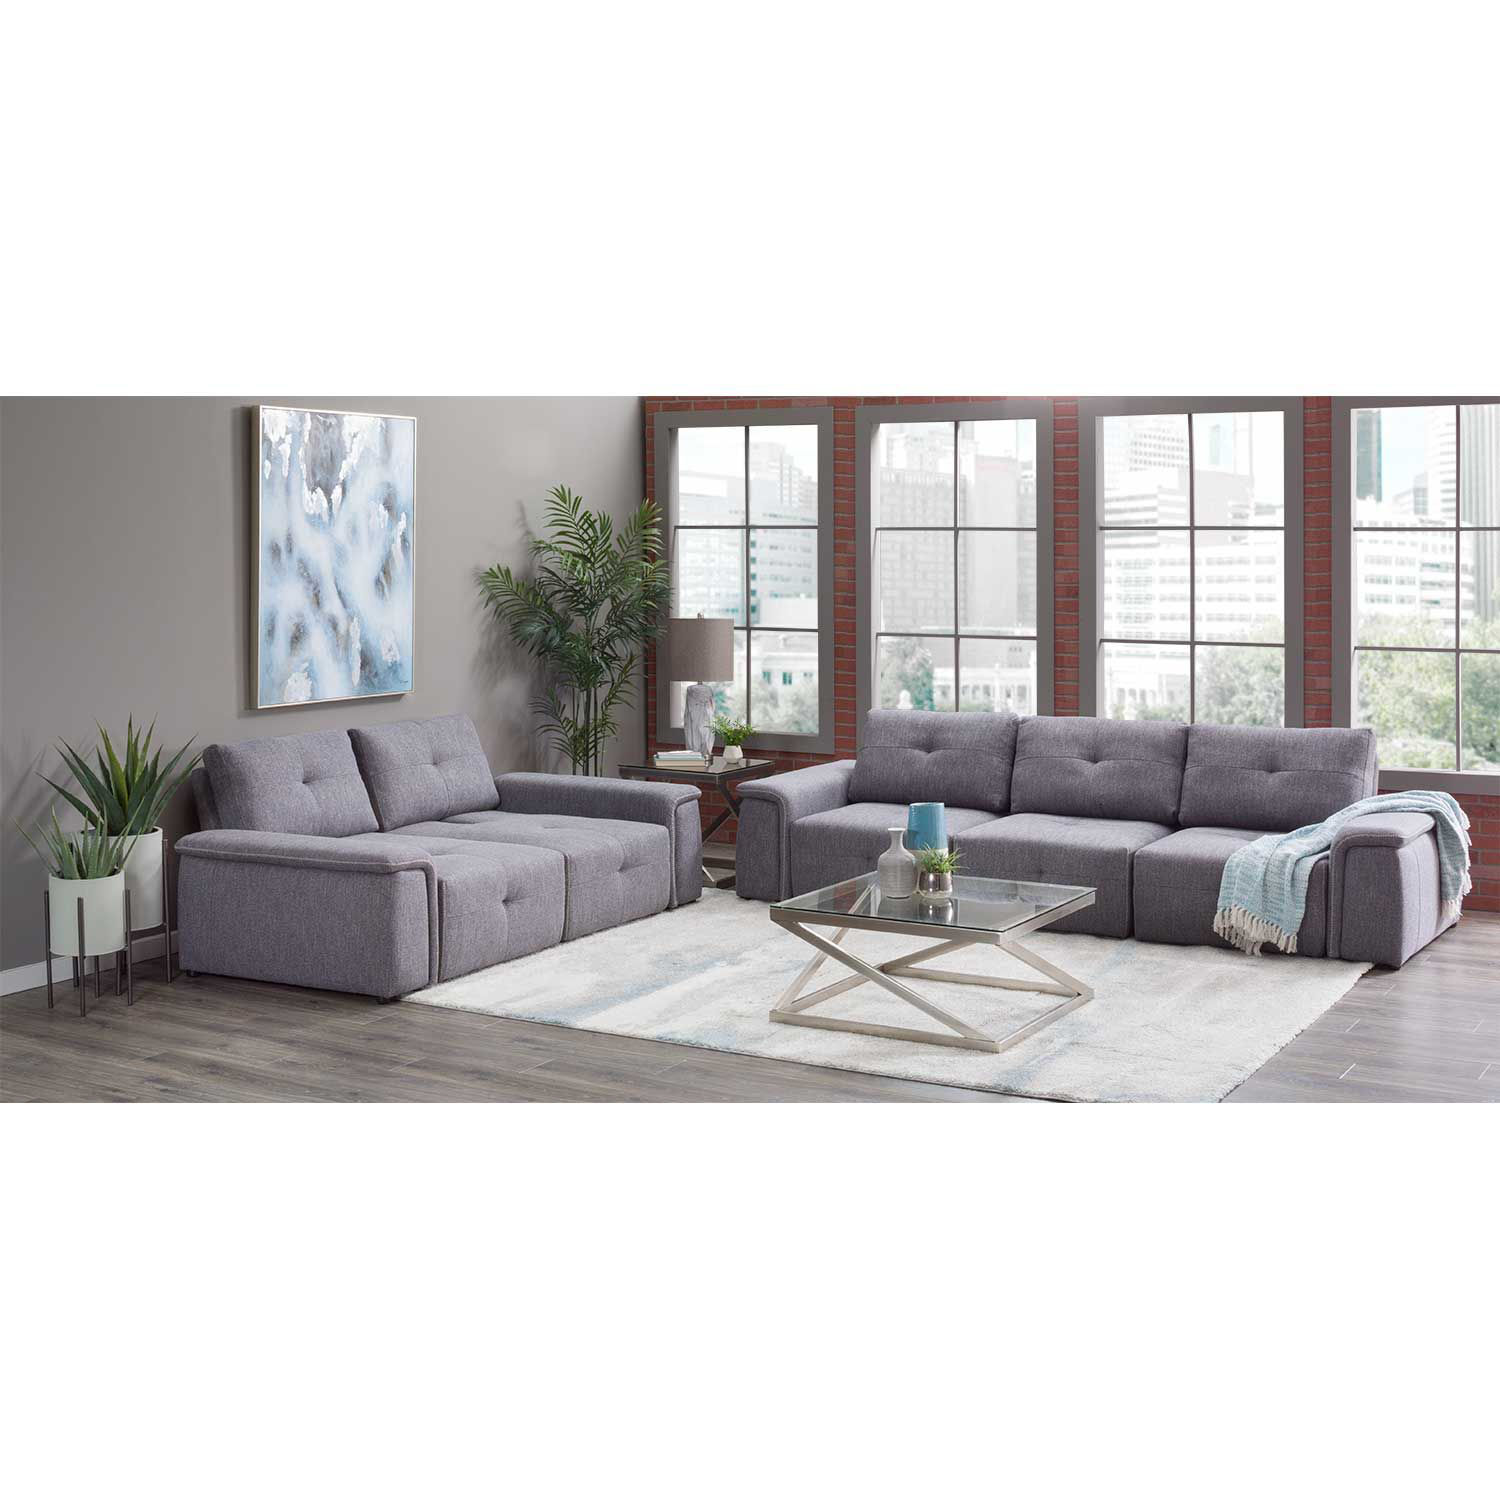 Picture of Adapt Gray Loveseat